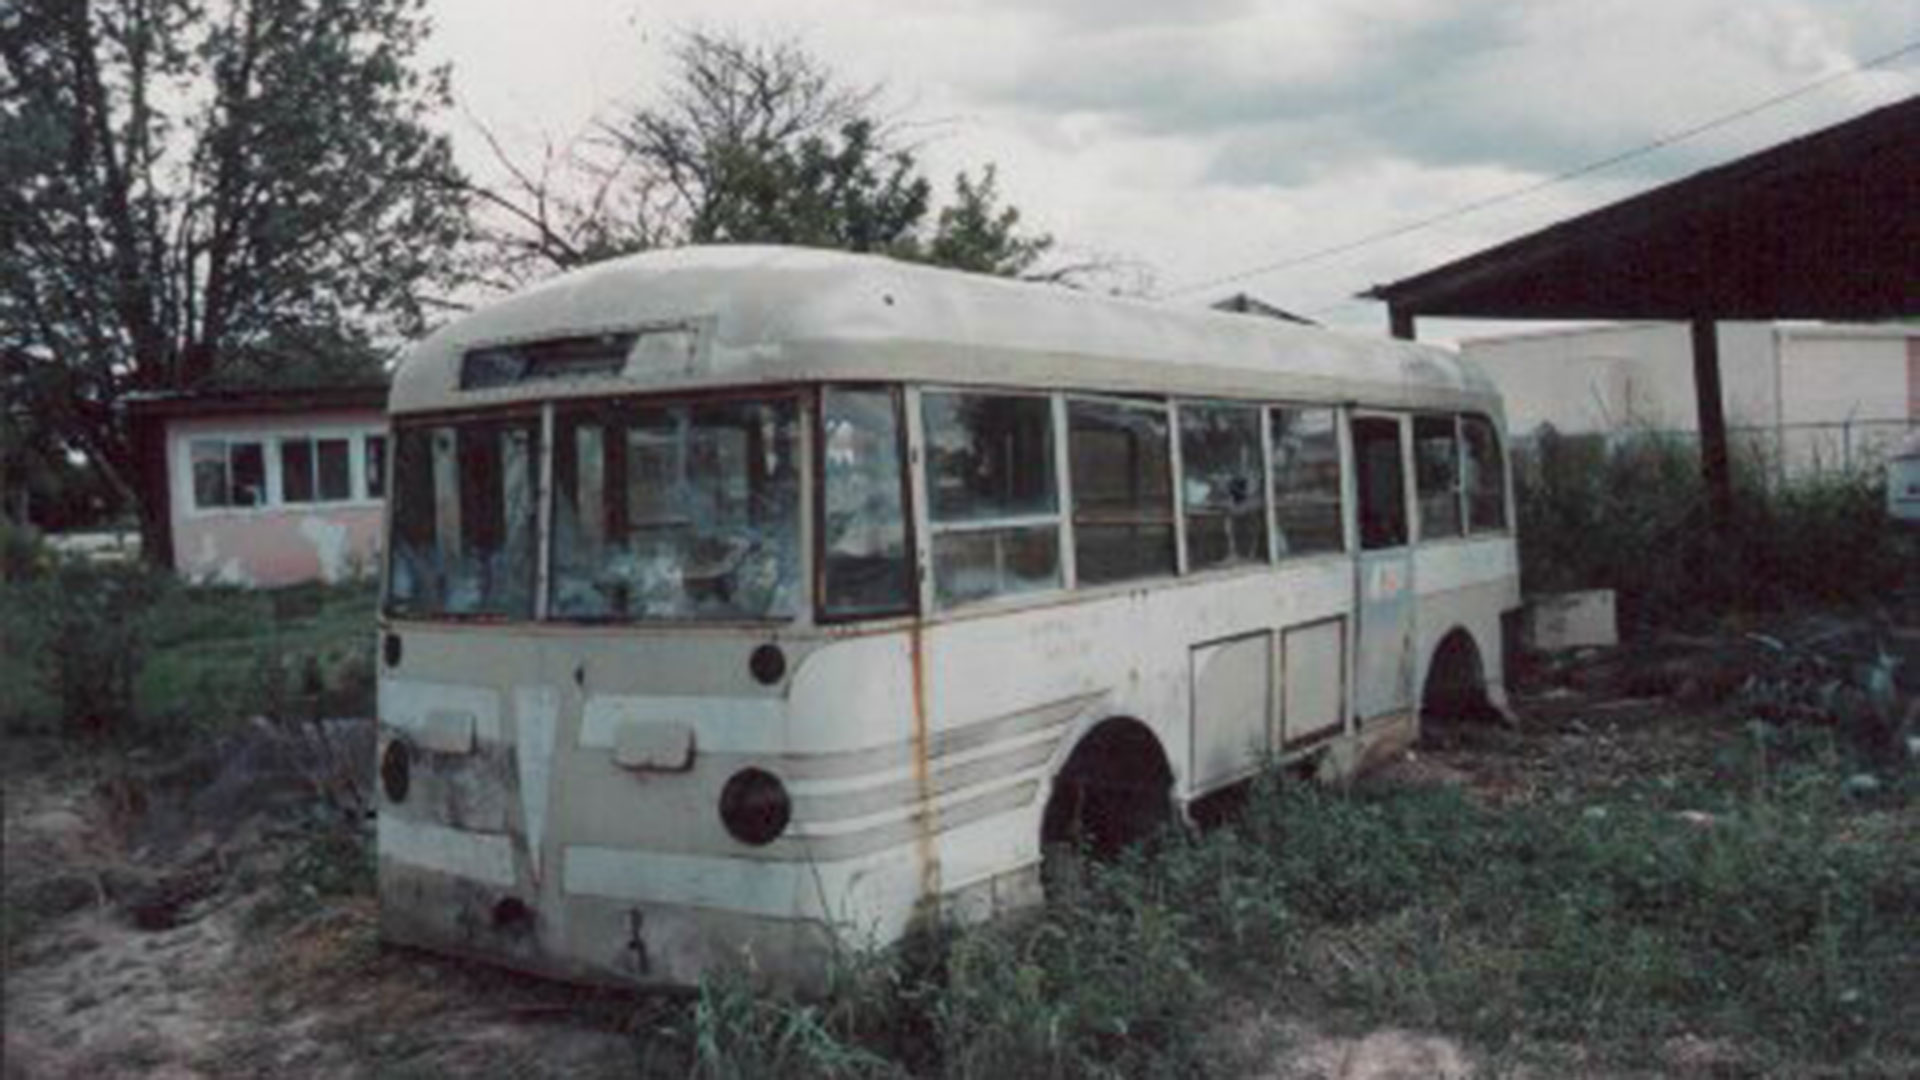 Bisbee bus found